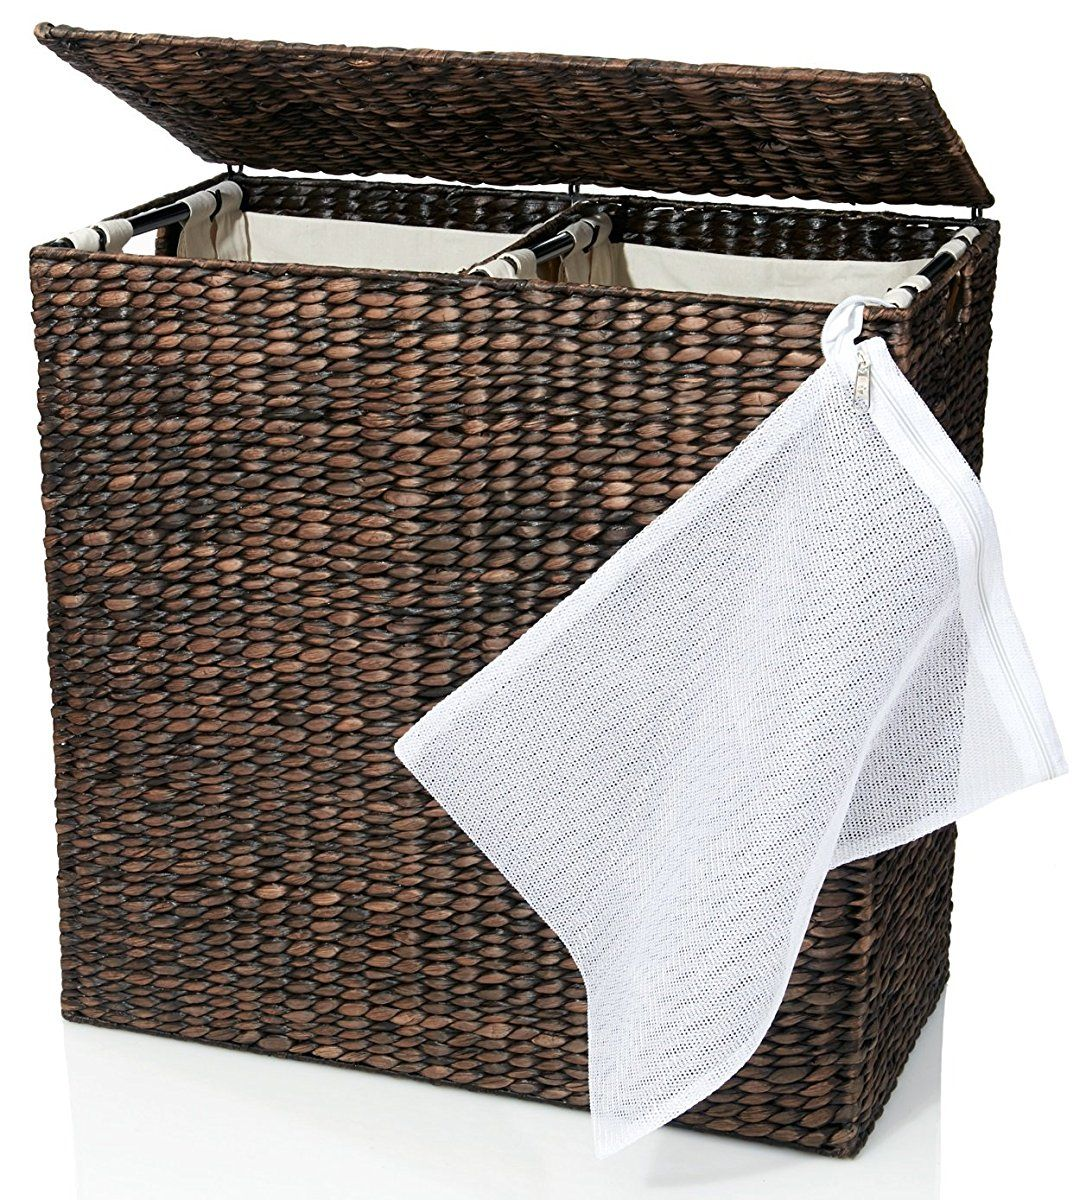 The Easiest Diy Hanging Laundry Hamper Washable Too Hanging